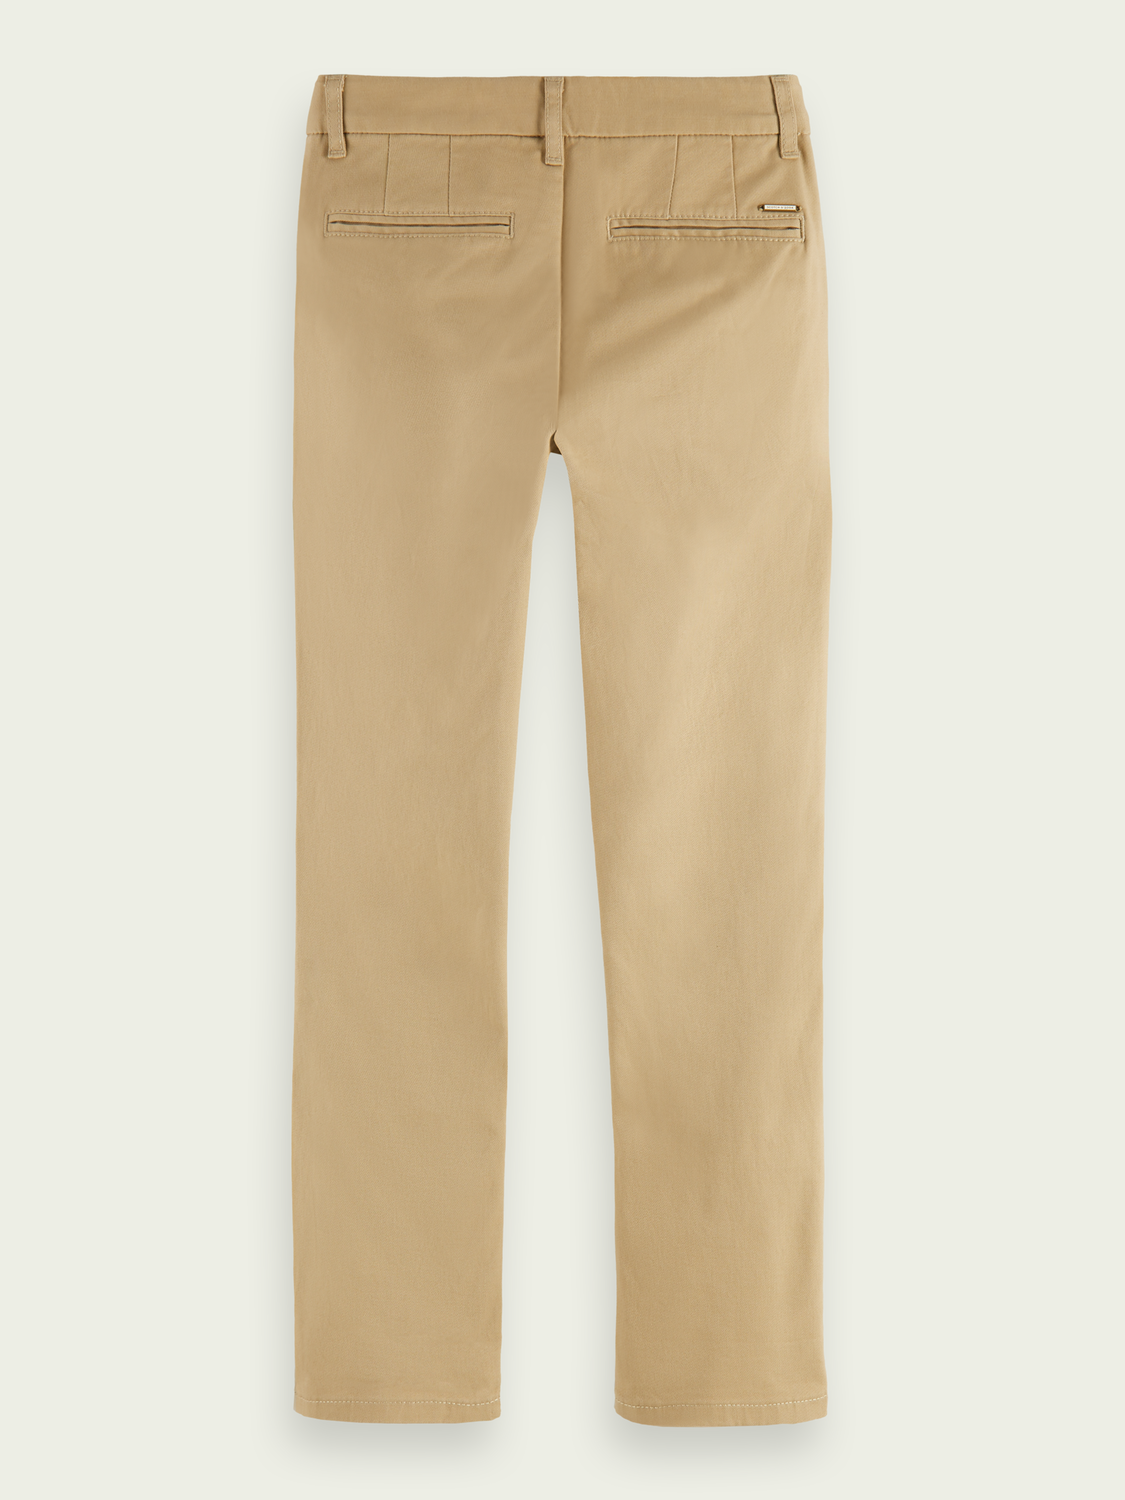 Kids Cotton chino | Slim fit